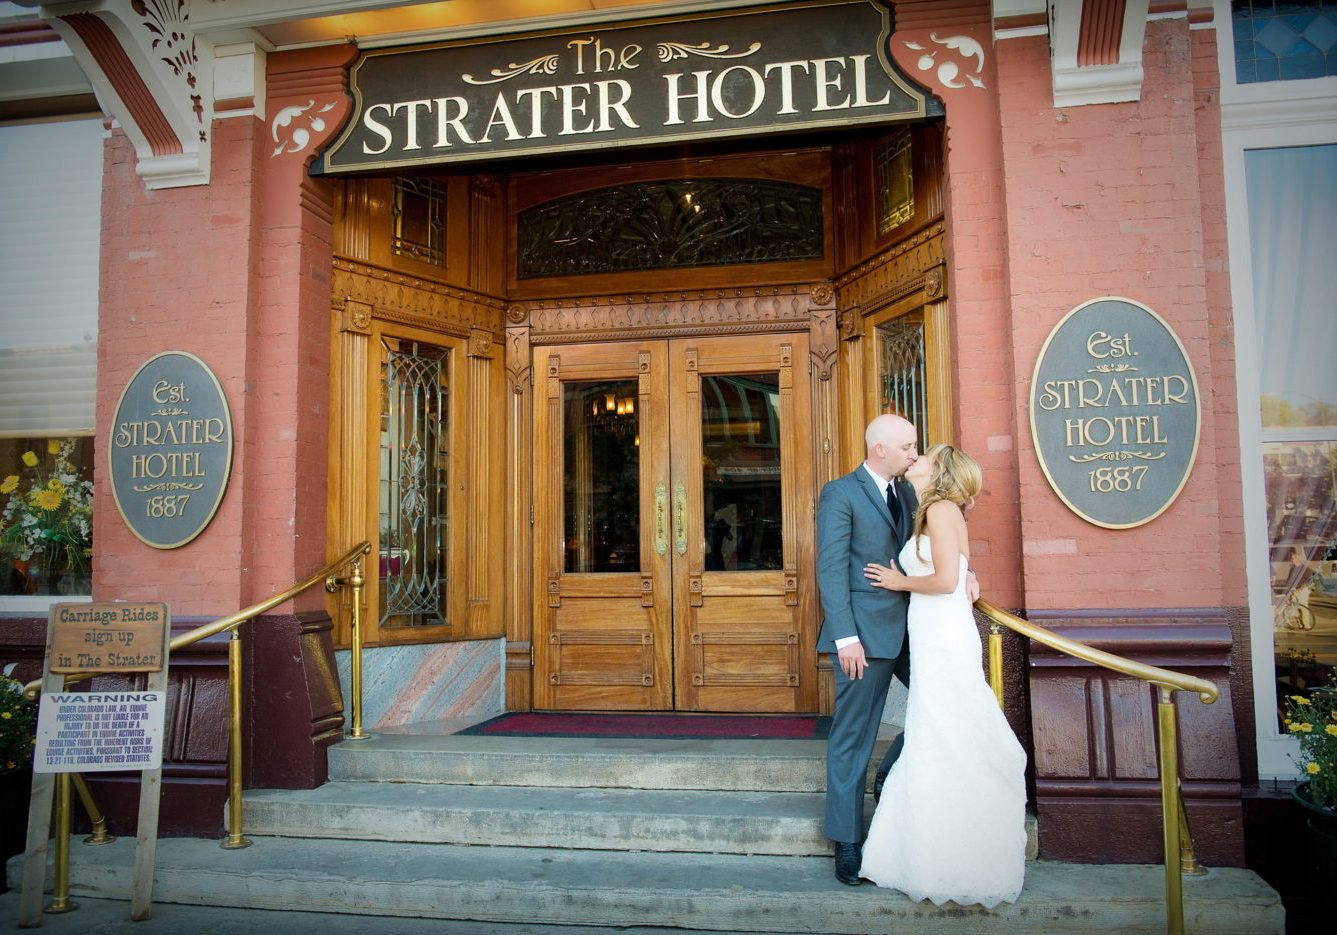 Strater Hotel, Durango Colorado